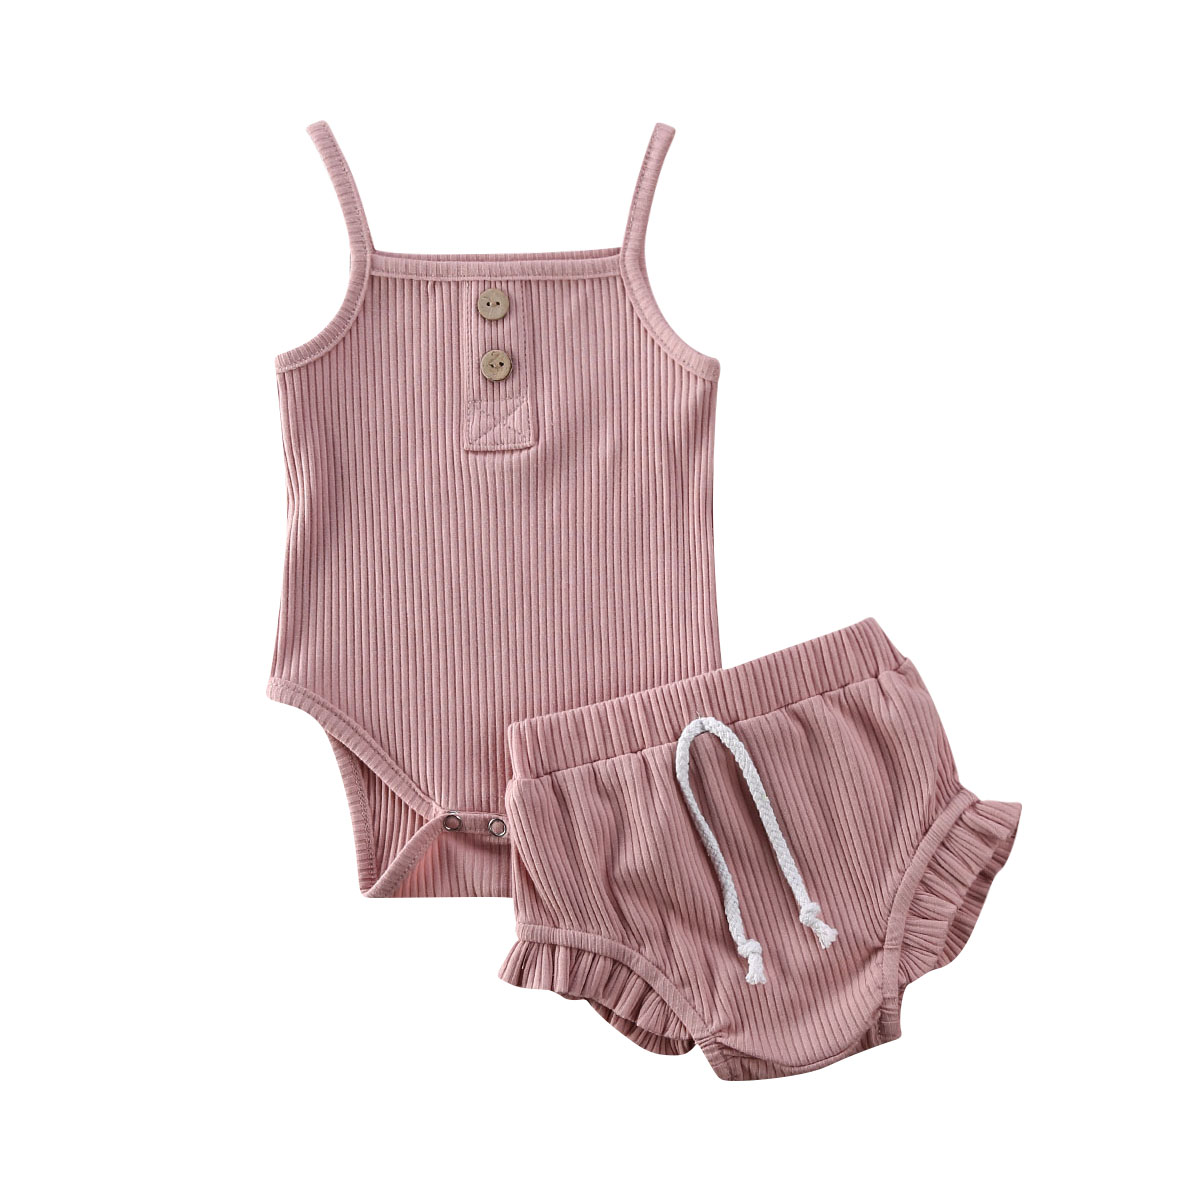 Summer Newborn Kid Baby Girls Clothes Set 2PCS Sleeveless Solid Knitted Crop Tops + Shorts Outfits